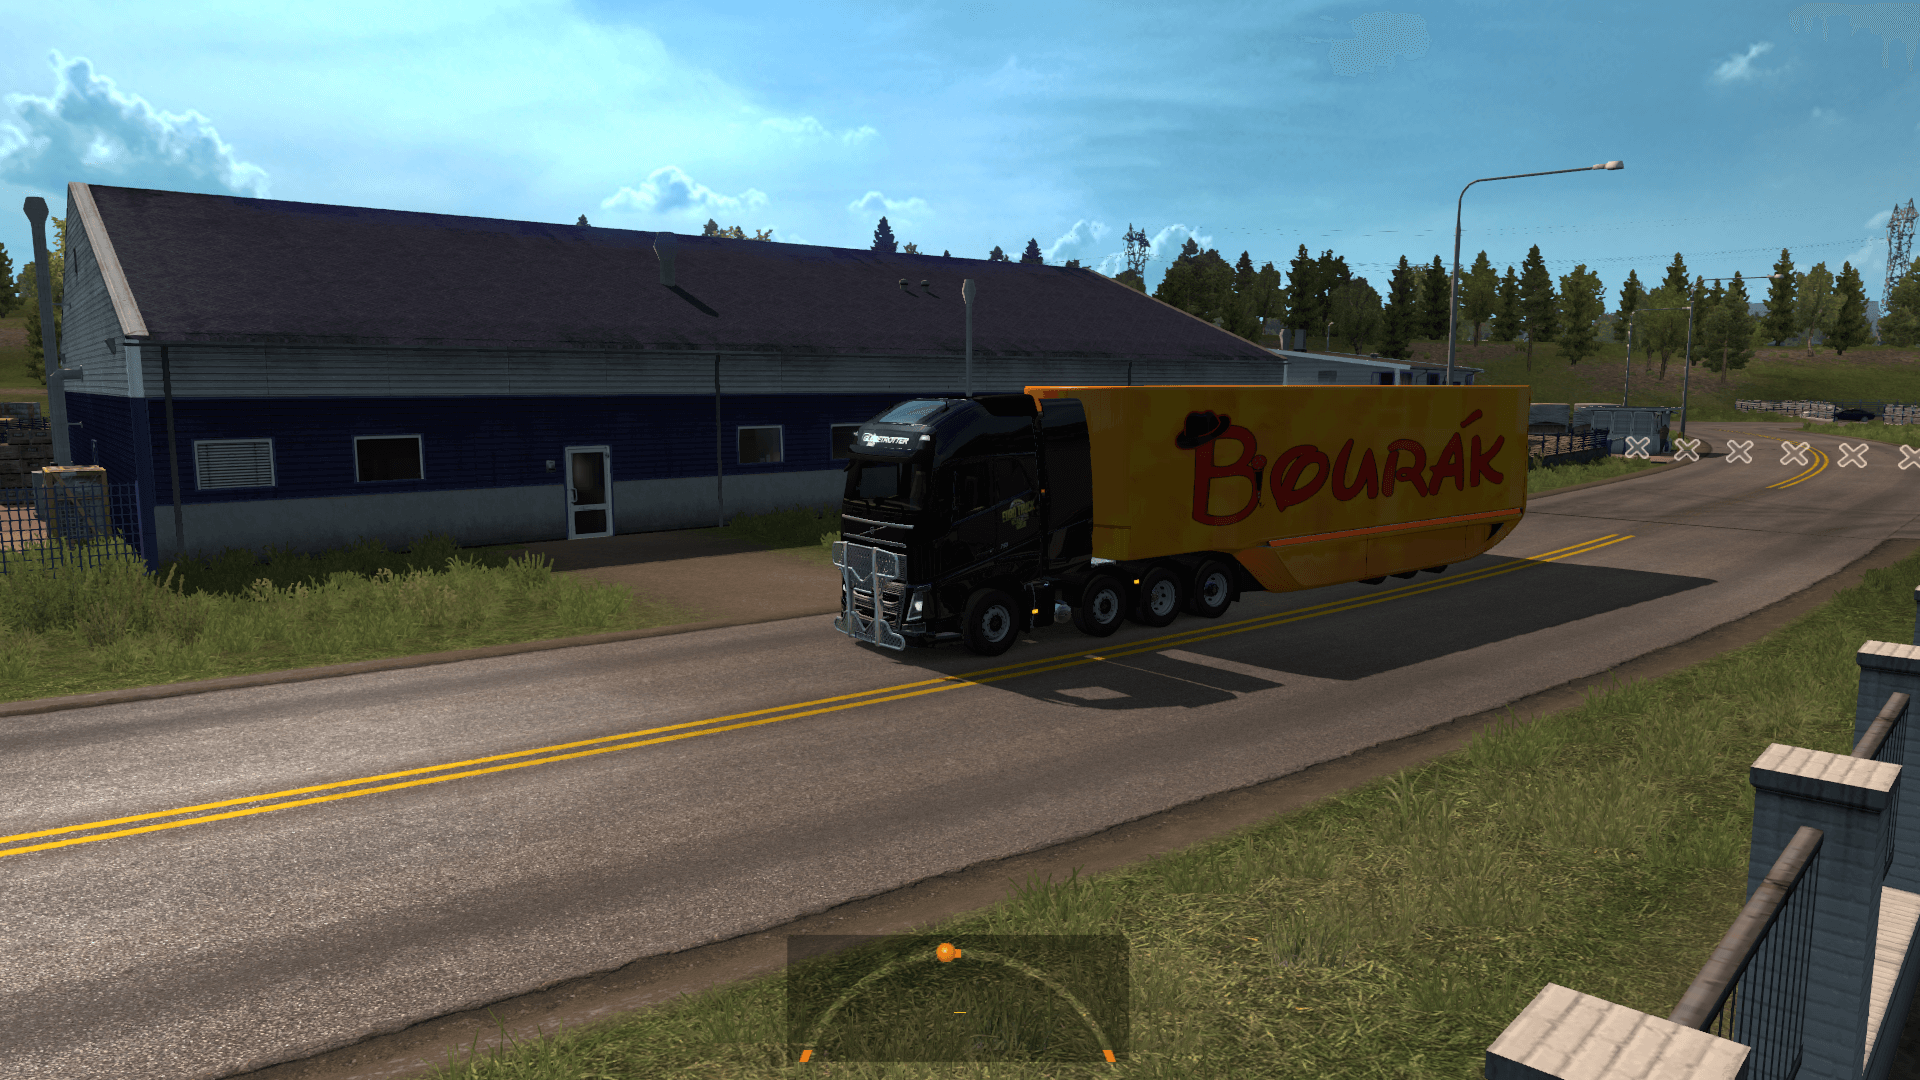 Bourakkkk MB Aerodynamic Trailer skin